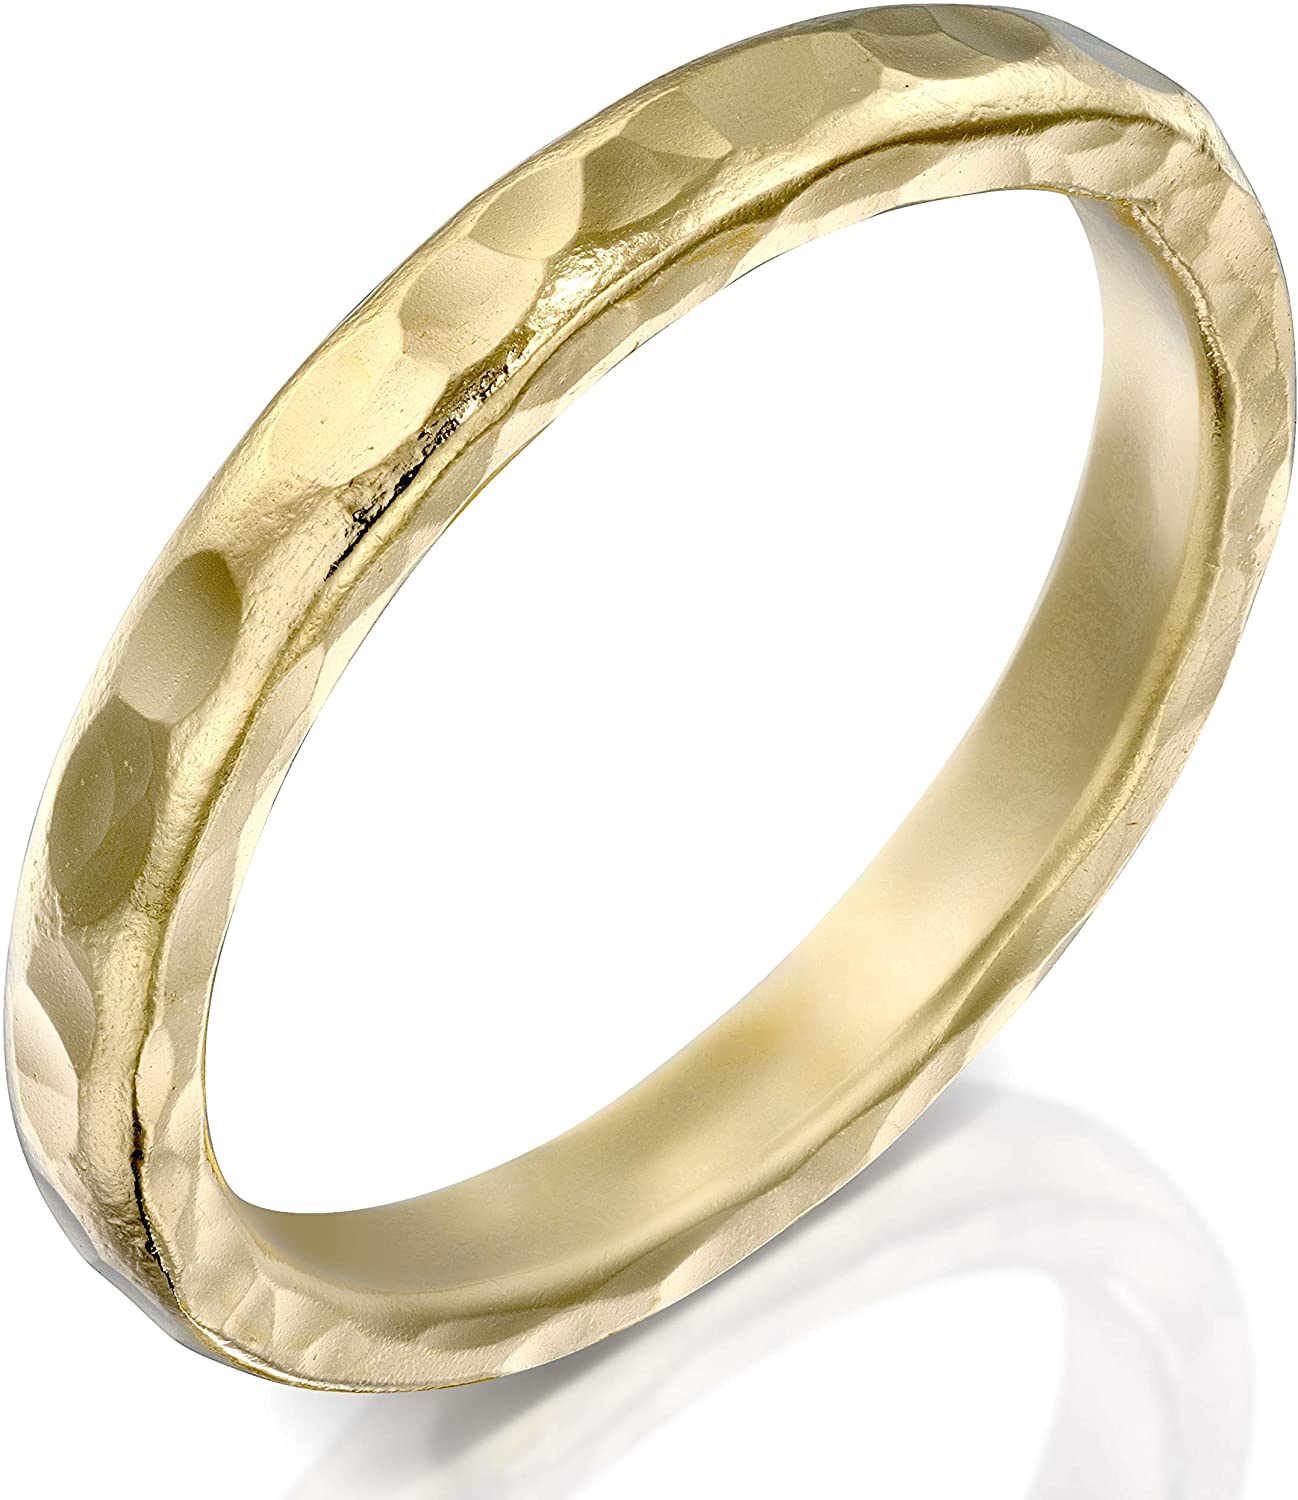 FABIN JEWELRY Handmade Gold Filled Hammered Ring, Textured Statement Band